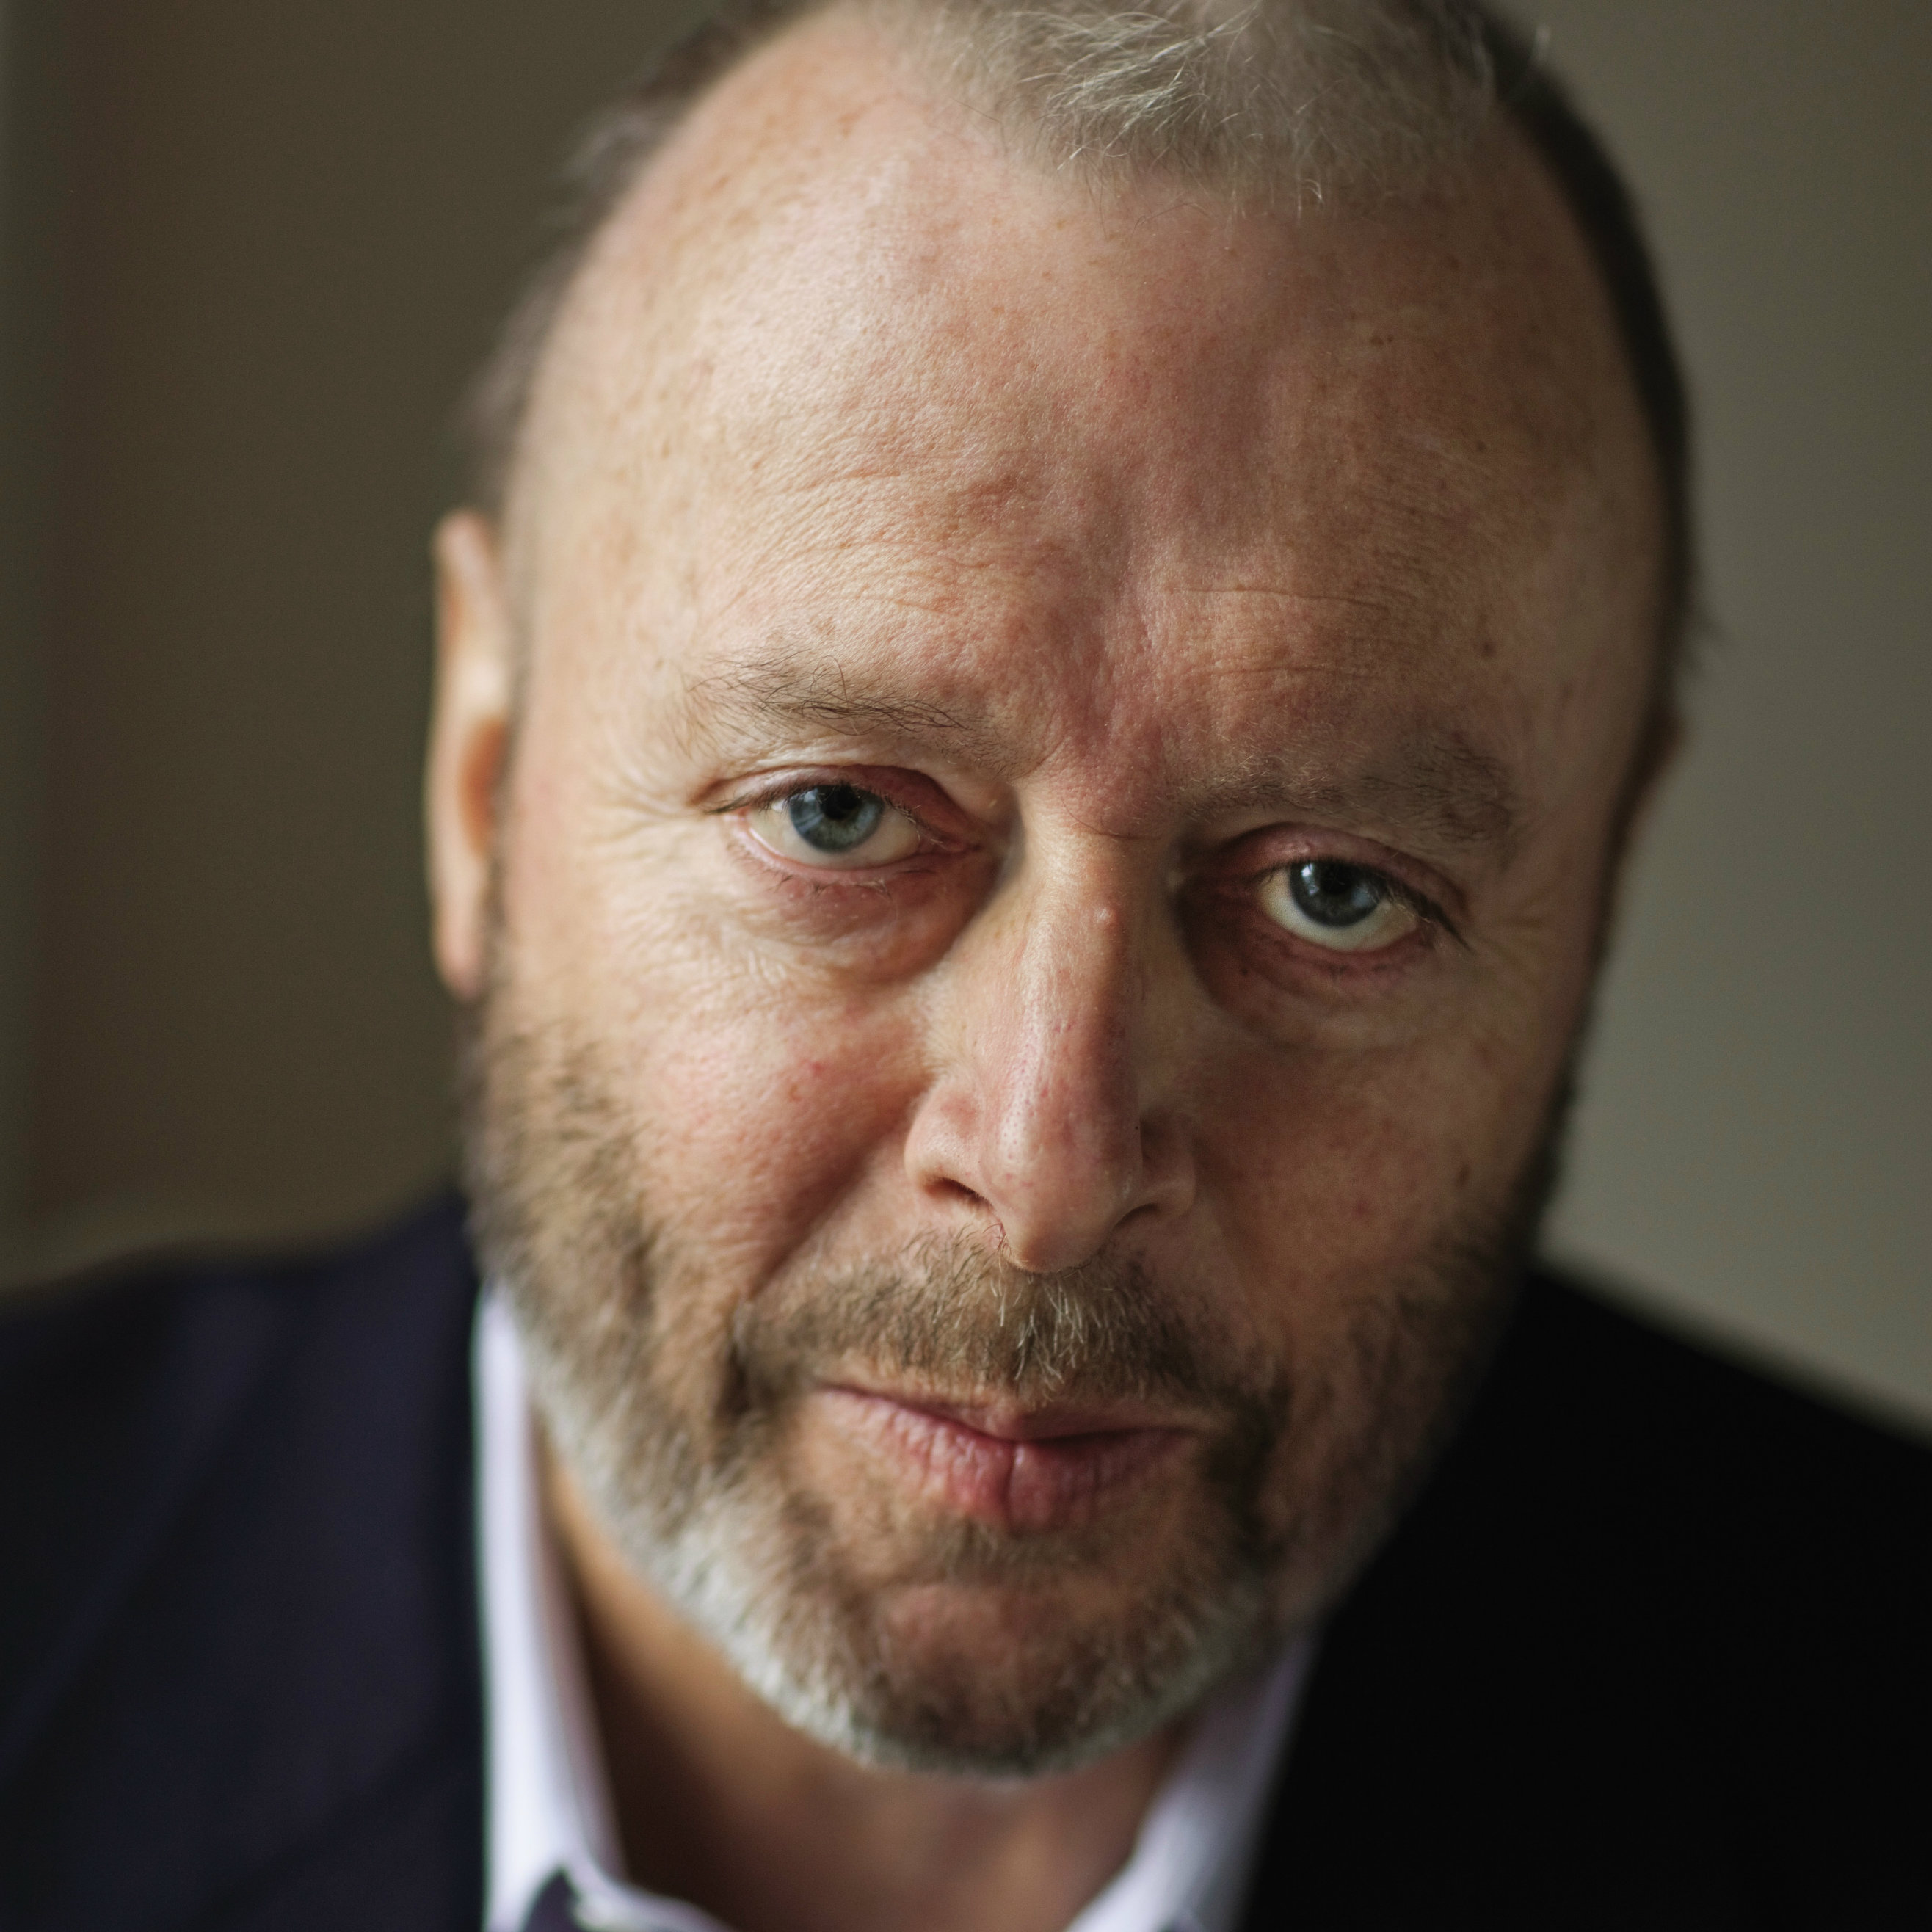 Christopher Hitchens died of esophageal cancer on Dec. 15, 2011.